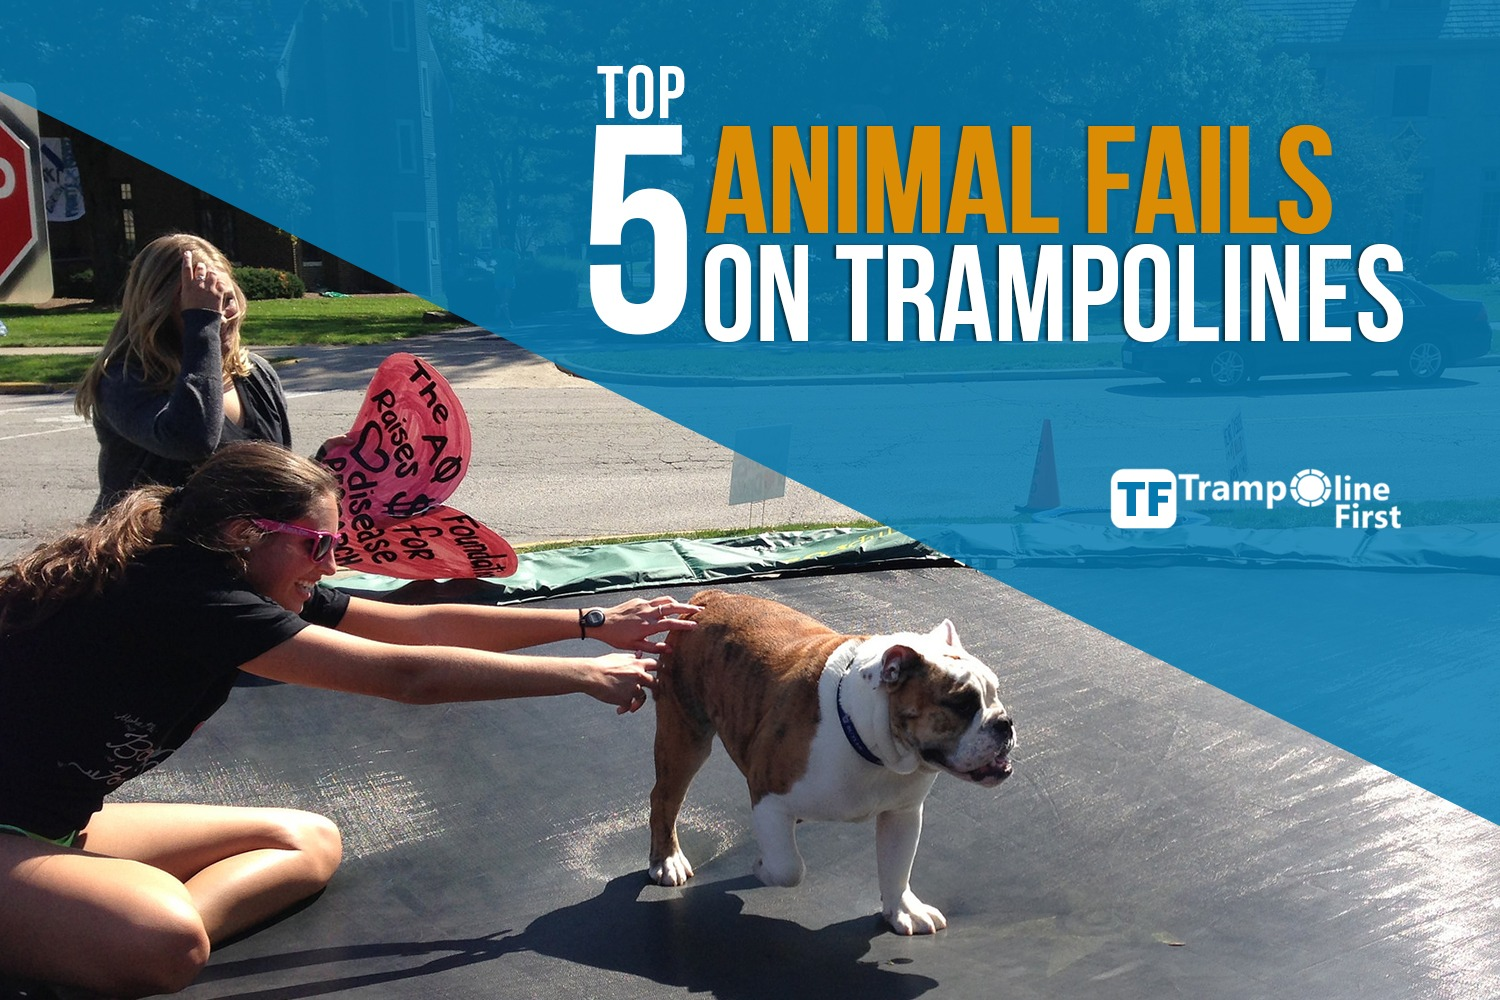 trampoline - animal fails